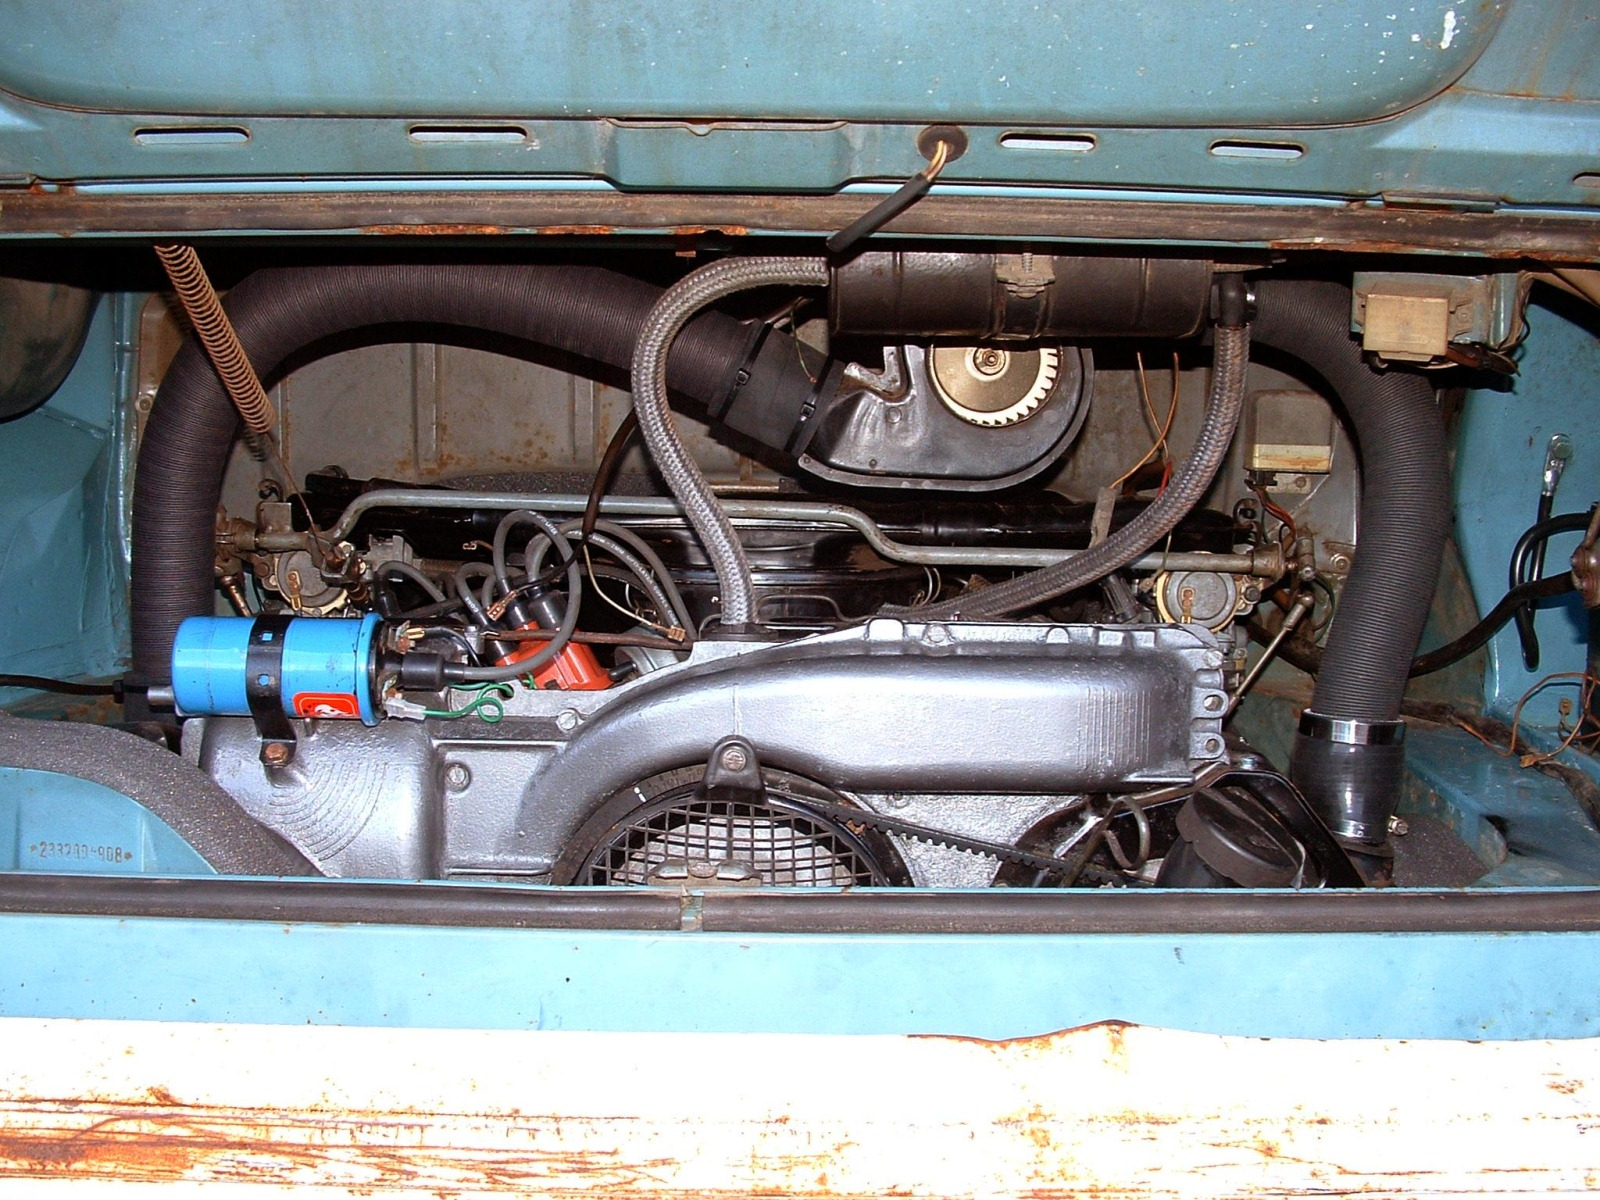 1973 vw beetle fuse box diagram bus engine compartment diagram wiring diagram 1973 vw beetle engine compartment wiring